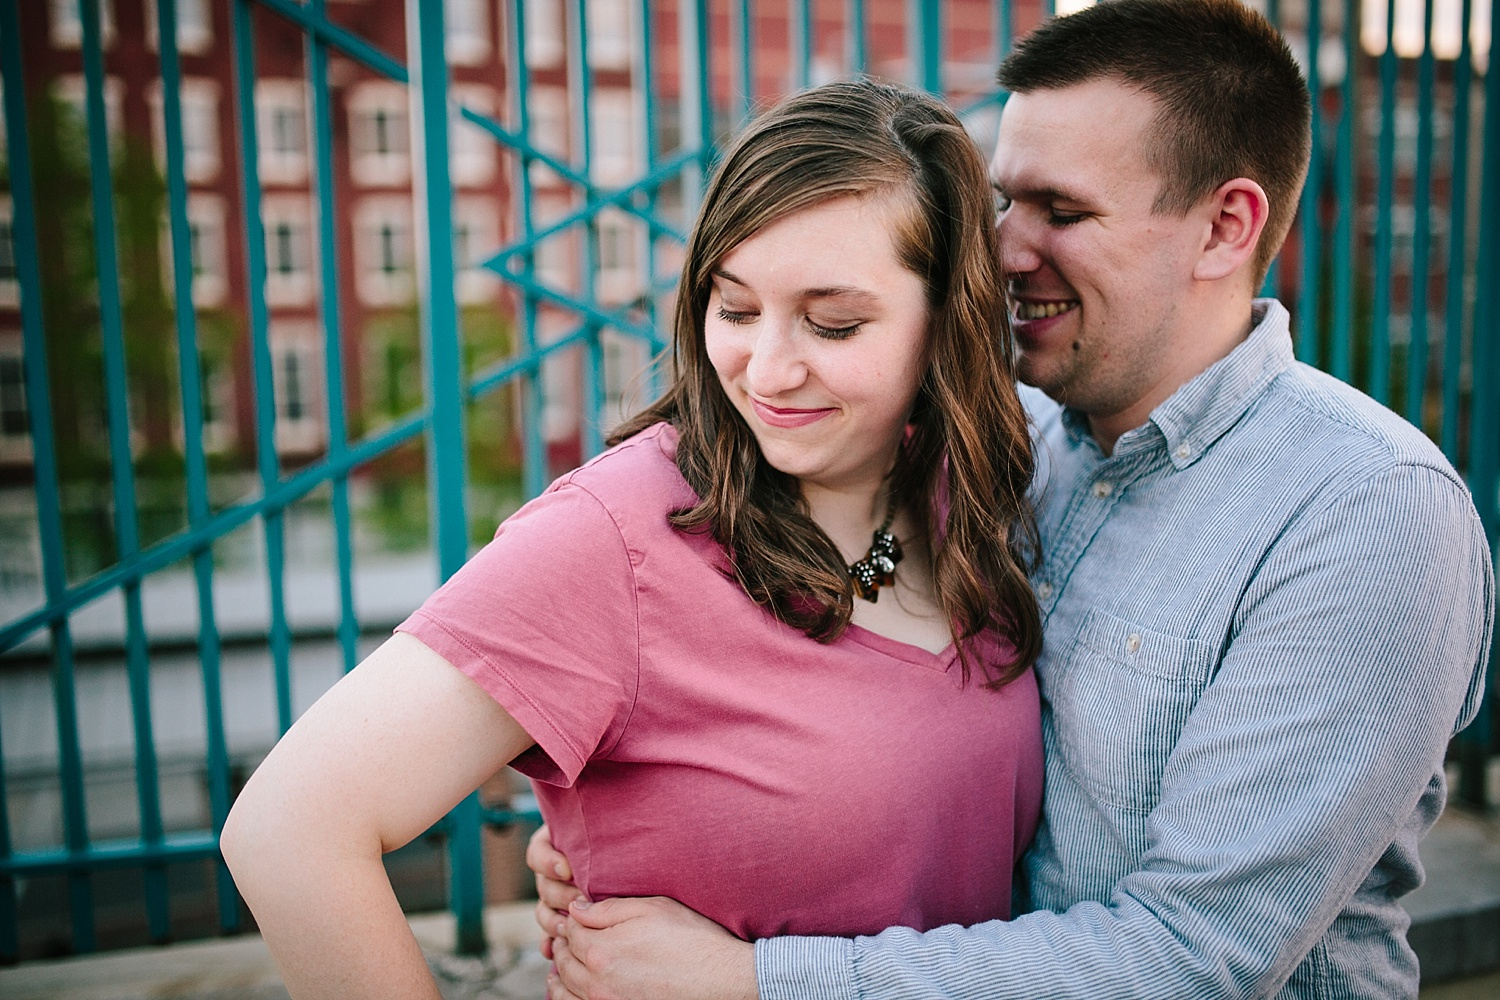 lizandbrandon_oldcity_philadelphia_elfrethsalley_engagement_session_image034.jpg